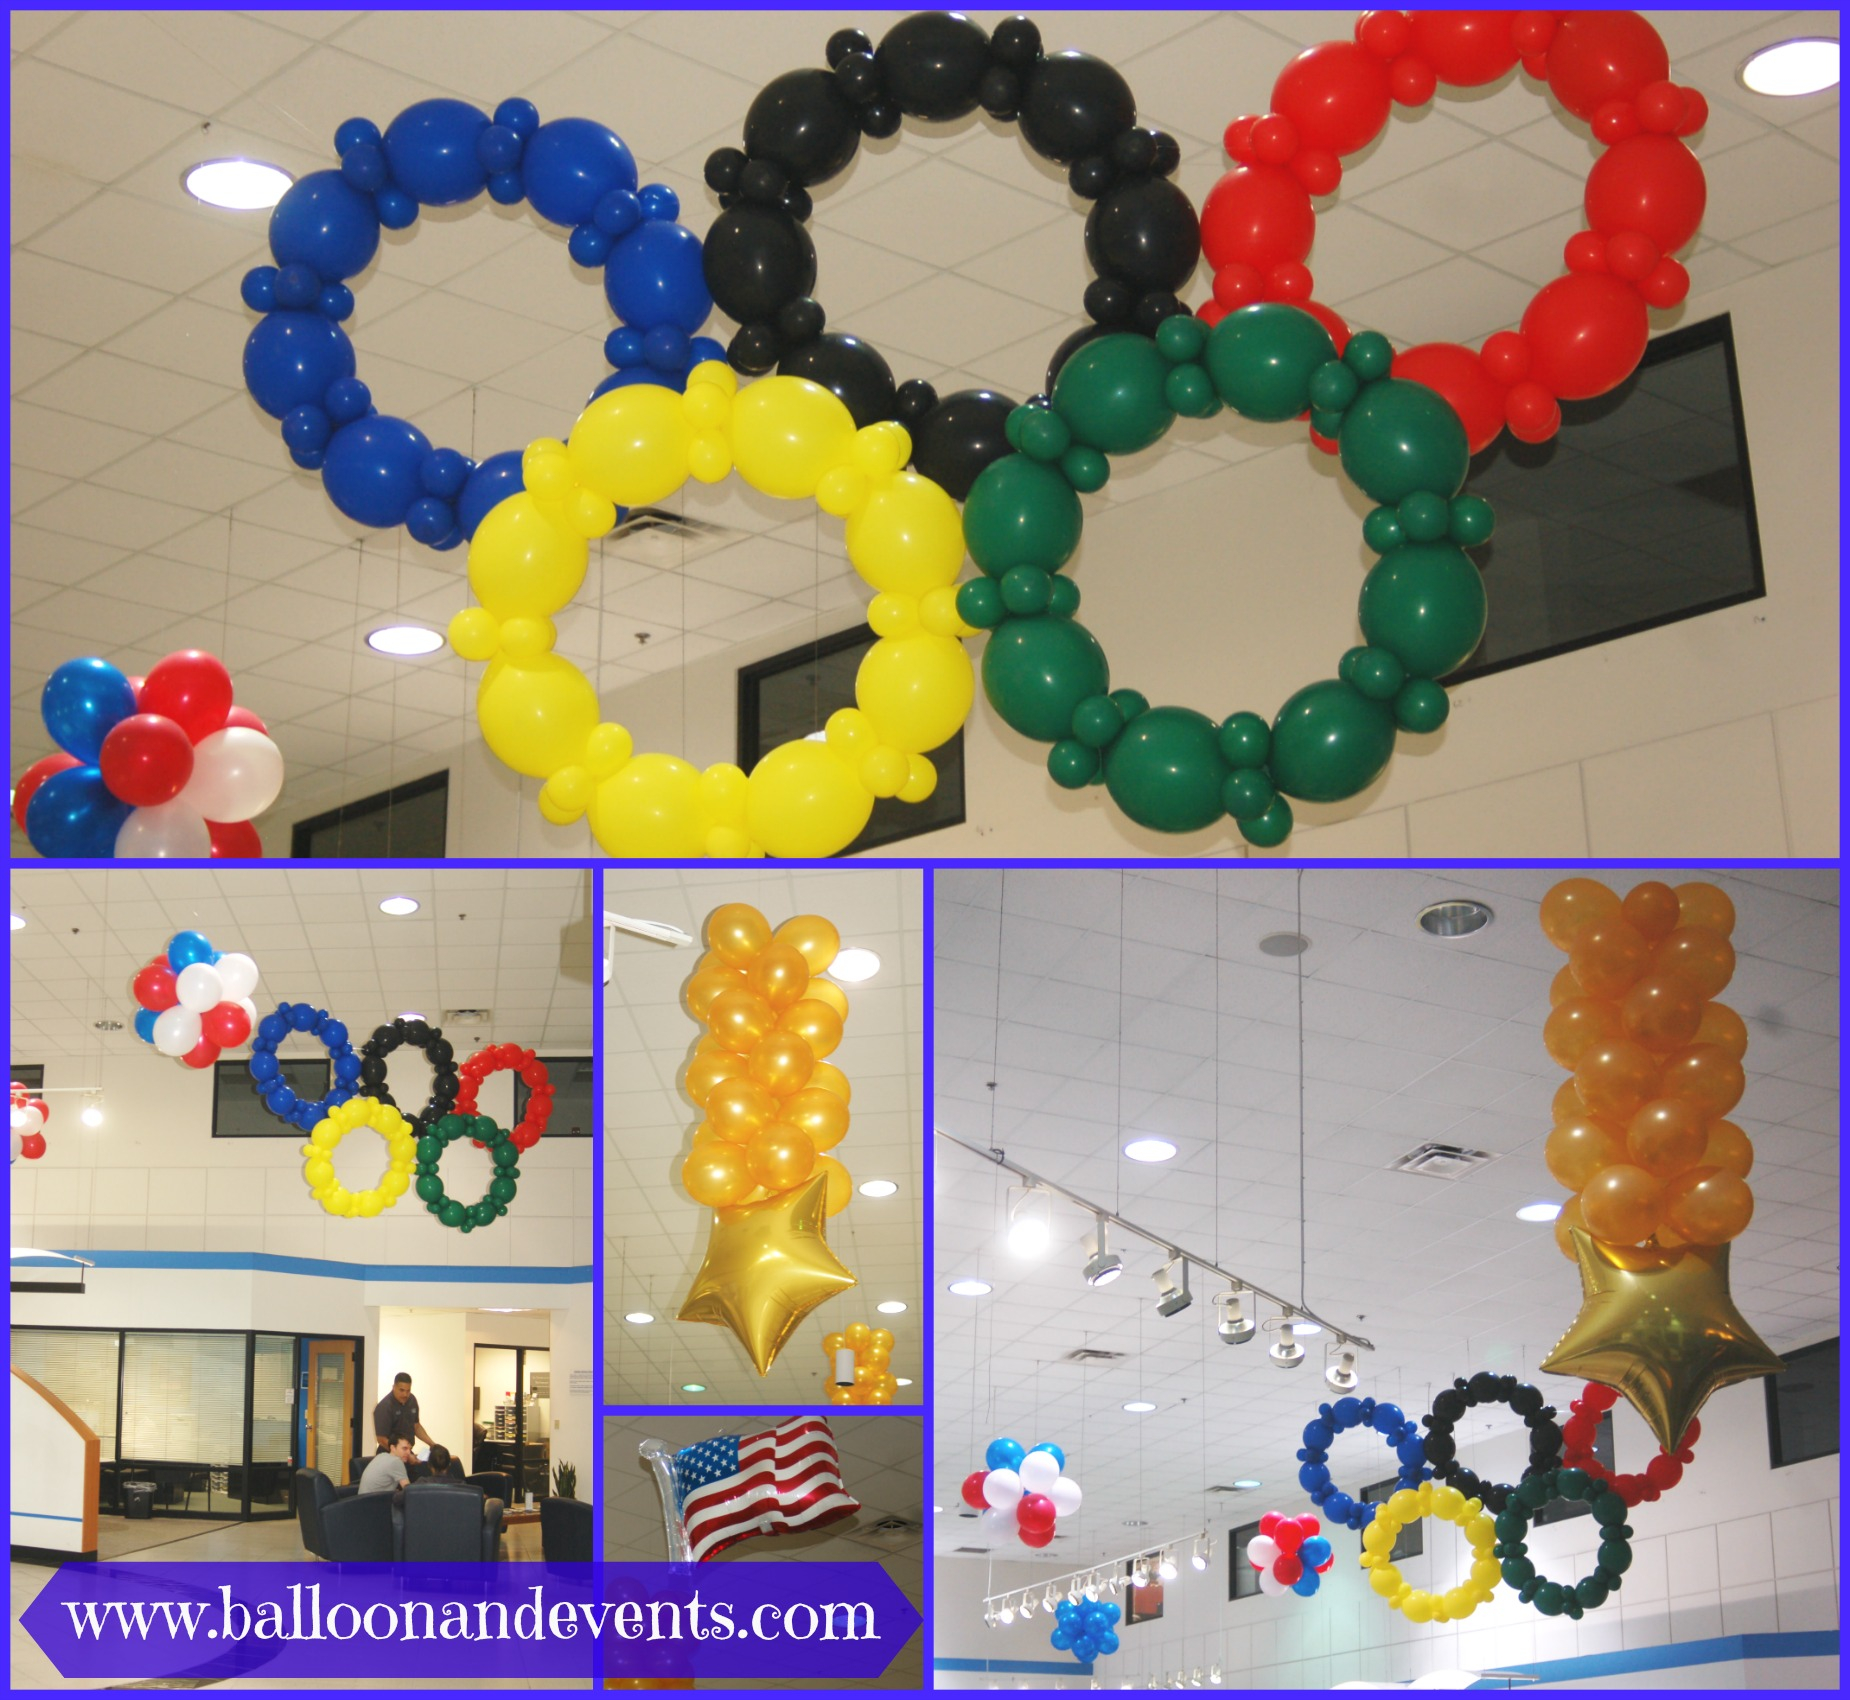 Fancy Go For The Gold With Olympic Themed Balloons! - throughout Fresh Olympic Themed Decorations